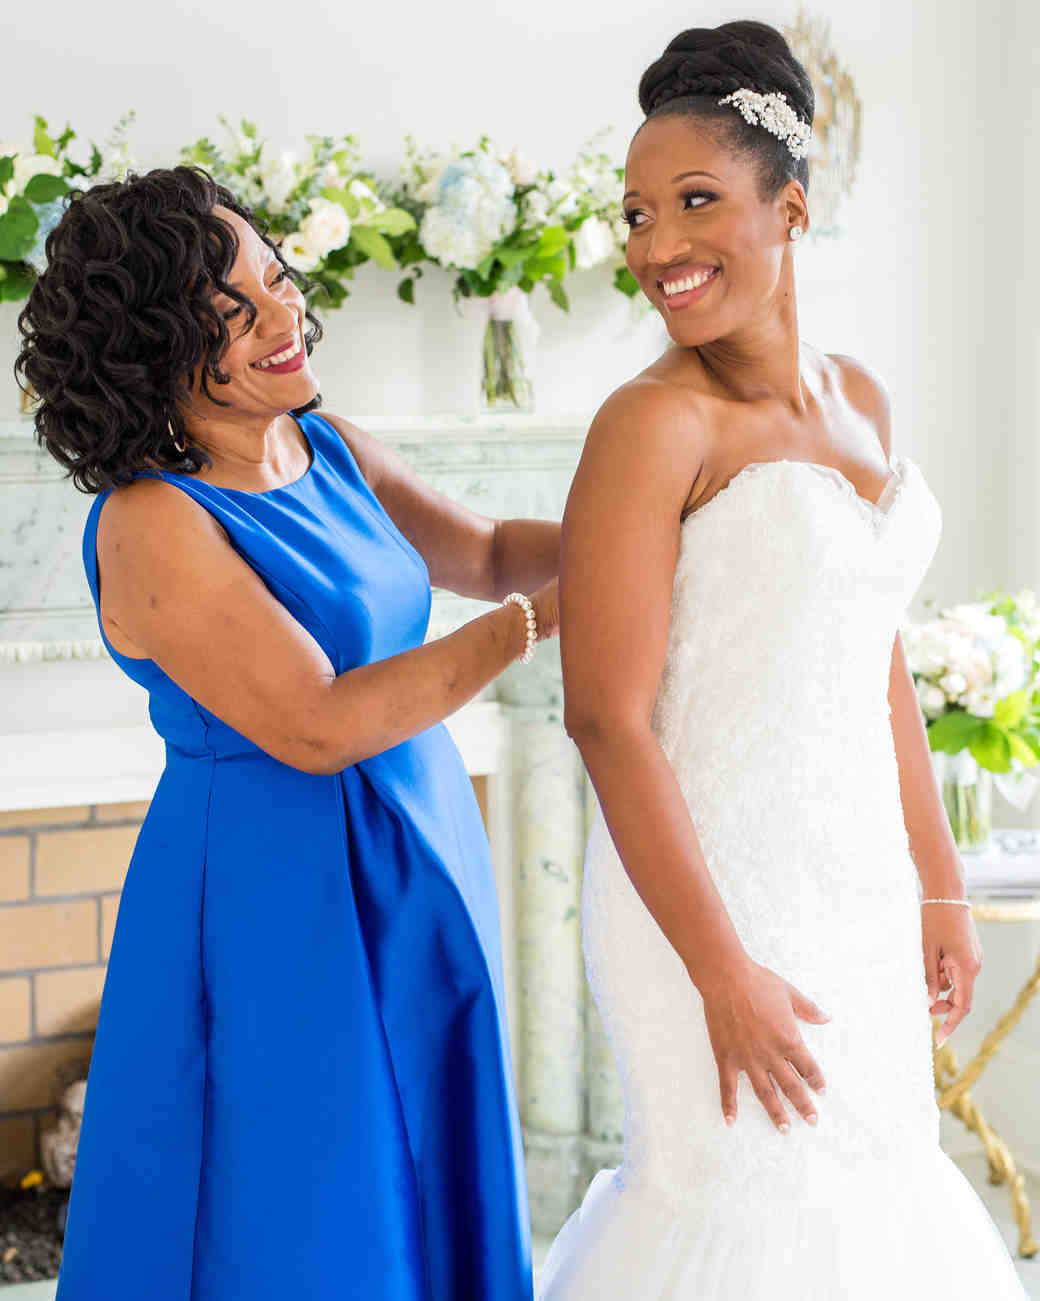 kenisha wendall wedding bride getting ready with mom blue dress